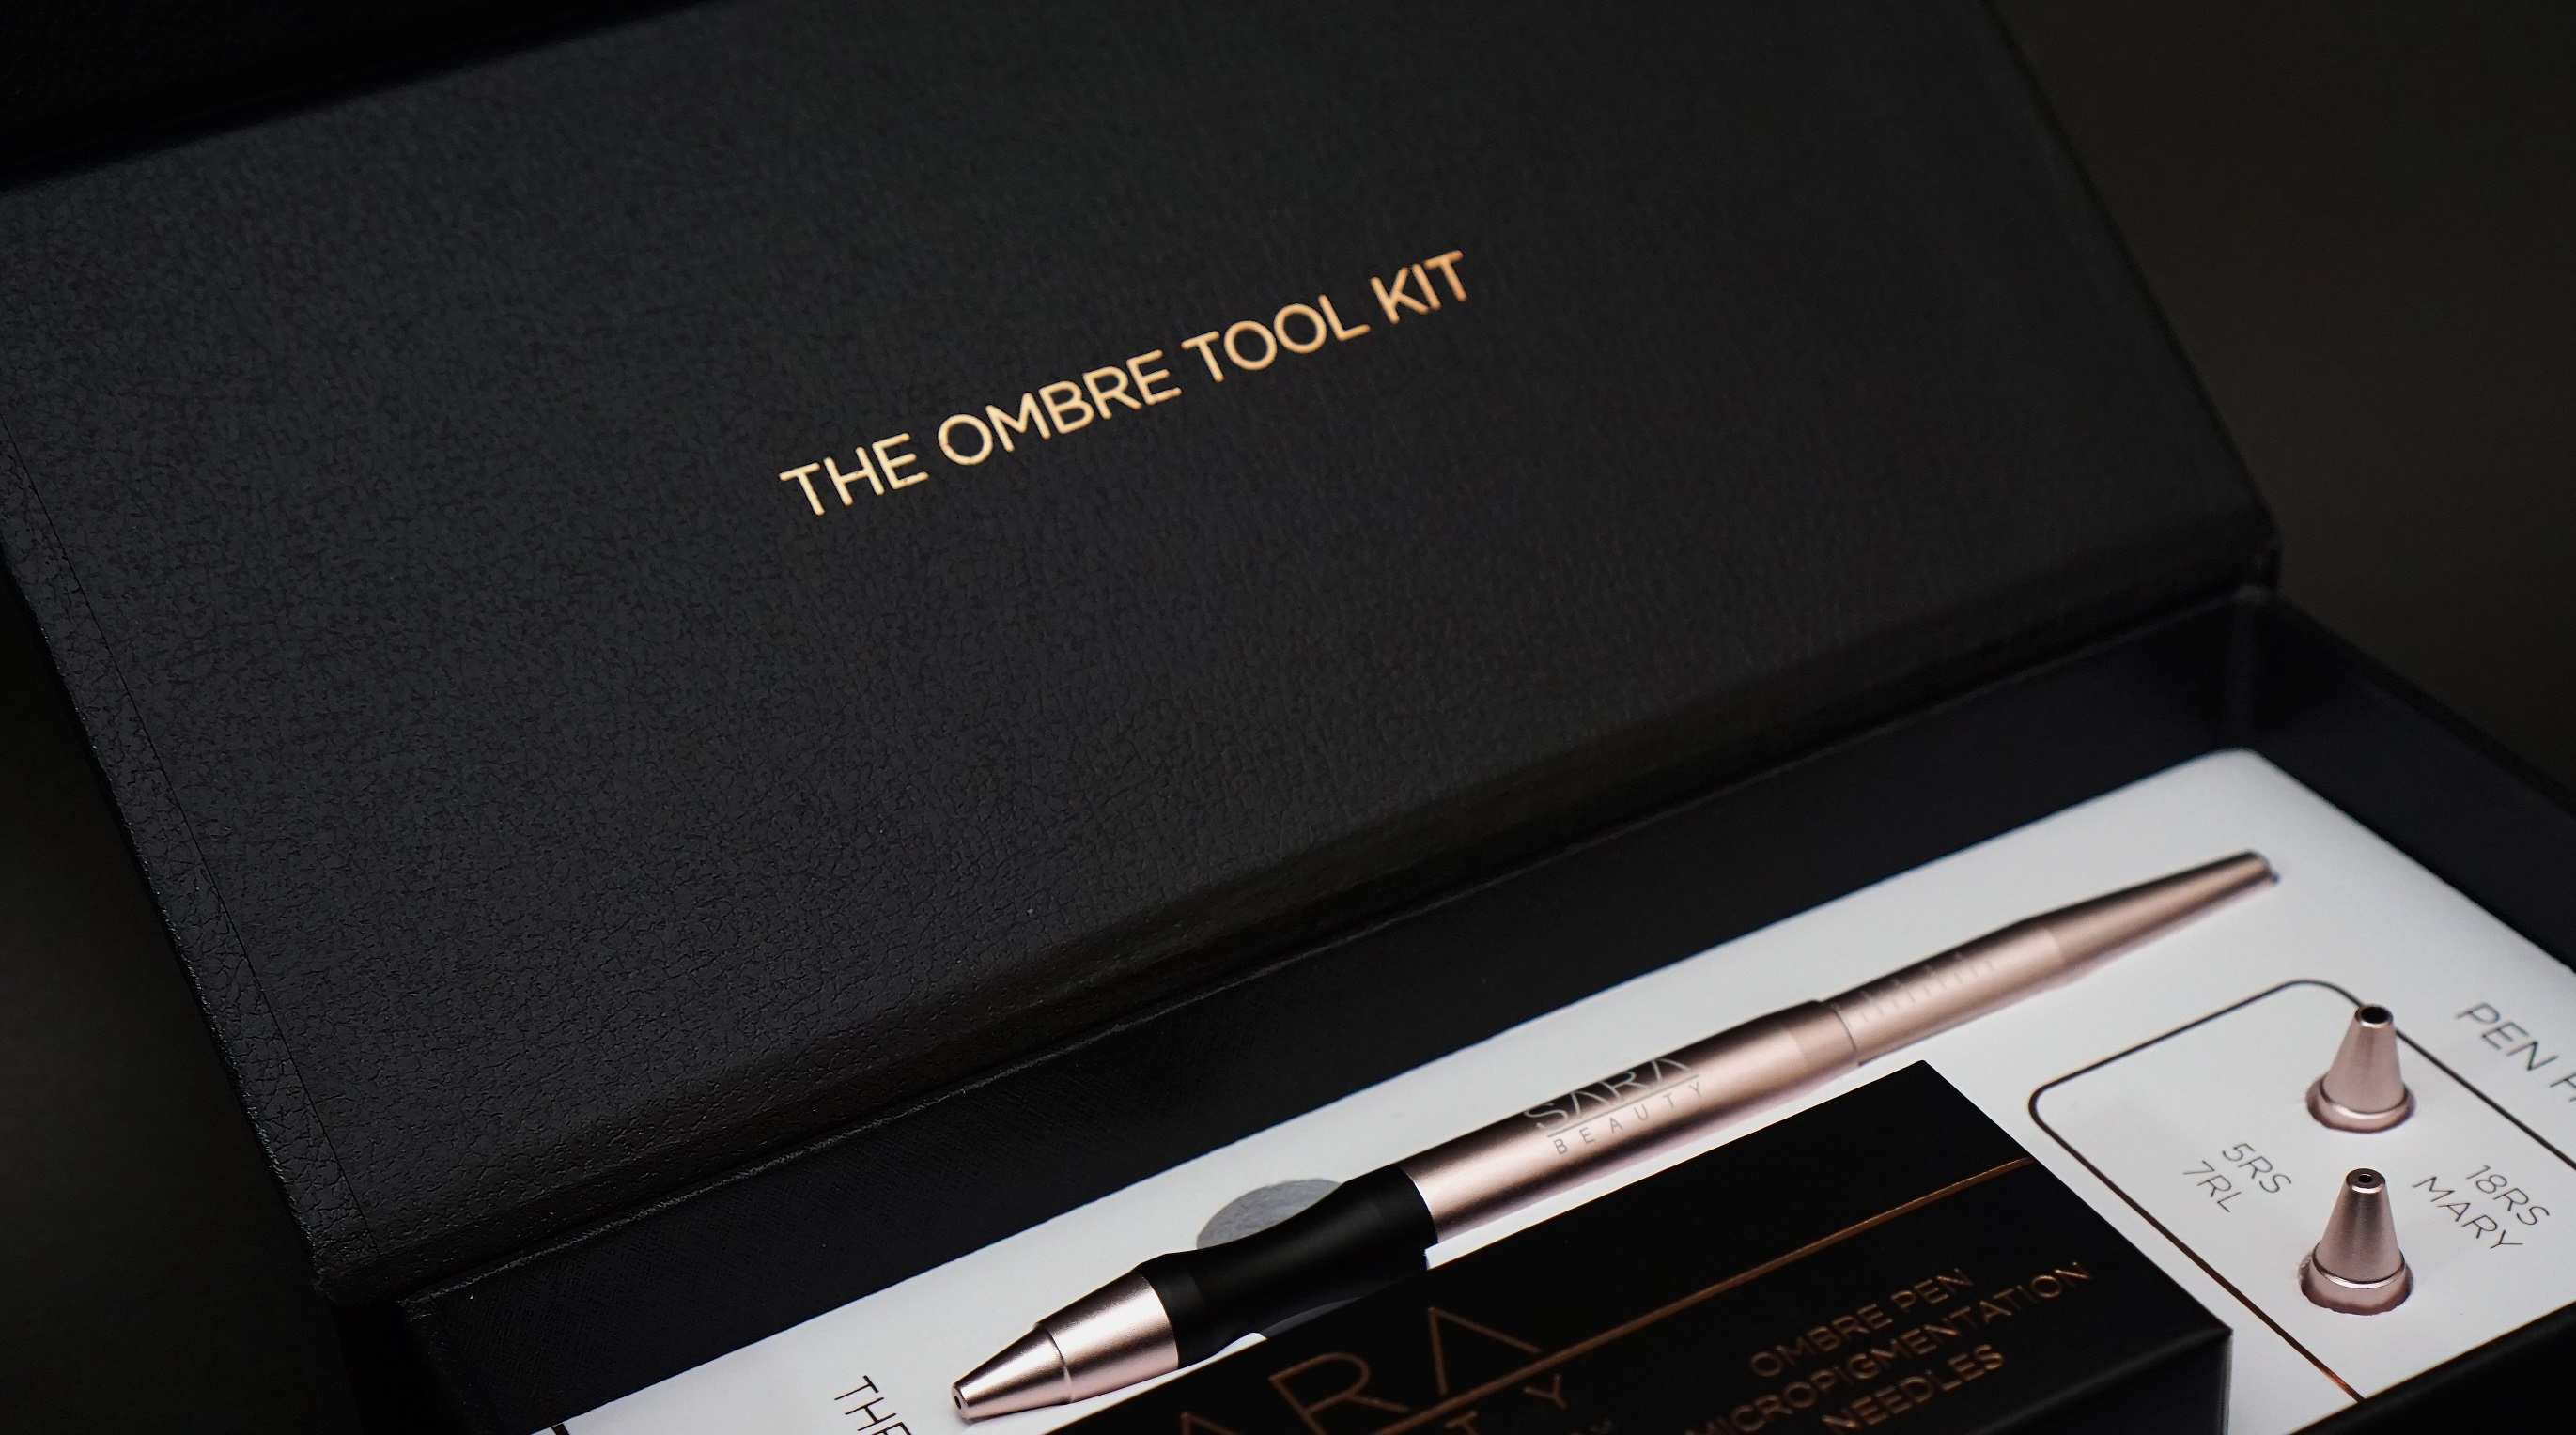 The Ombre Tool Kit